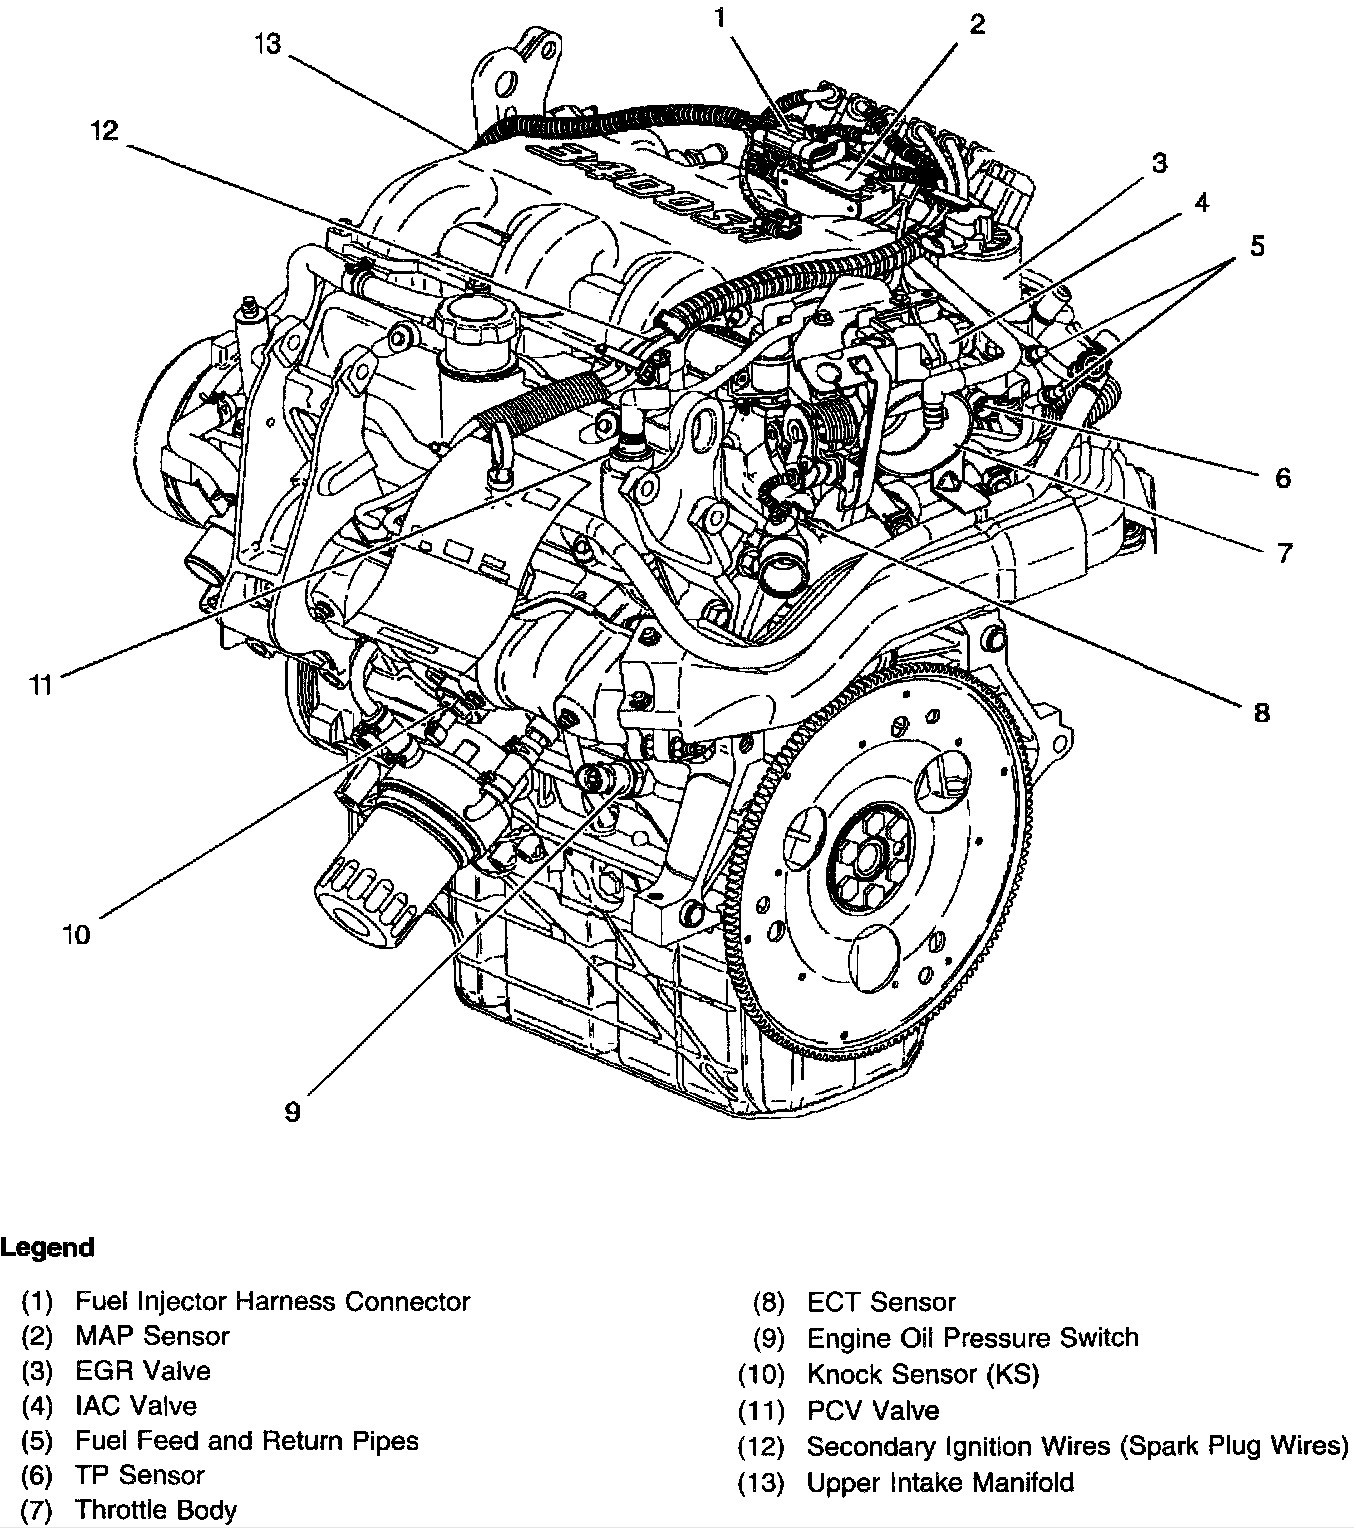 hight resolution of v 6 engine diagram wiring diagram third level rh 7 15 21 jacobwinterstein com gm 3400 v6 engine 3400 sfi v6 engine